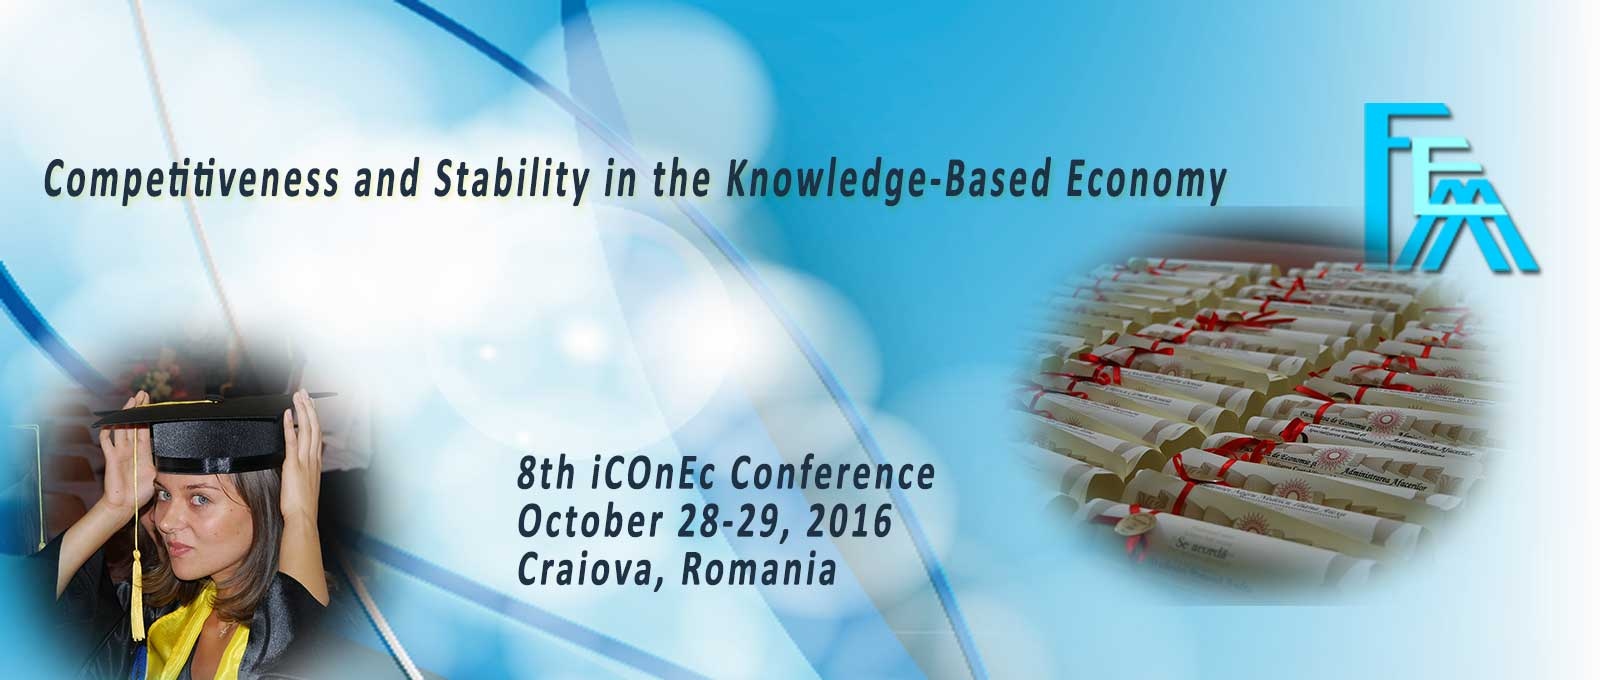 Competitiveness and Stability in the Knowledge-Based Economy 8th iCOnEc Conference